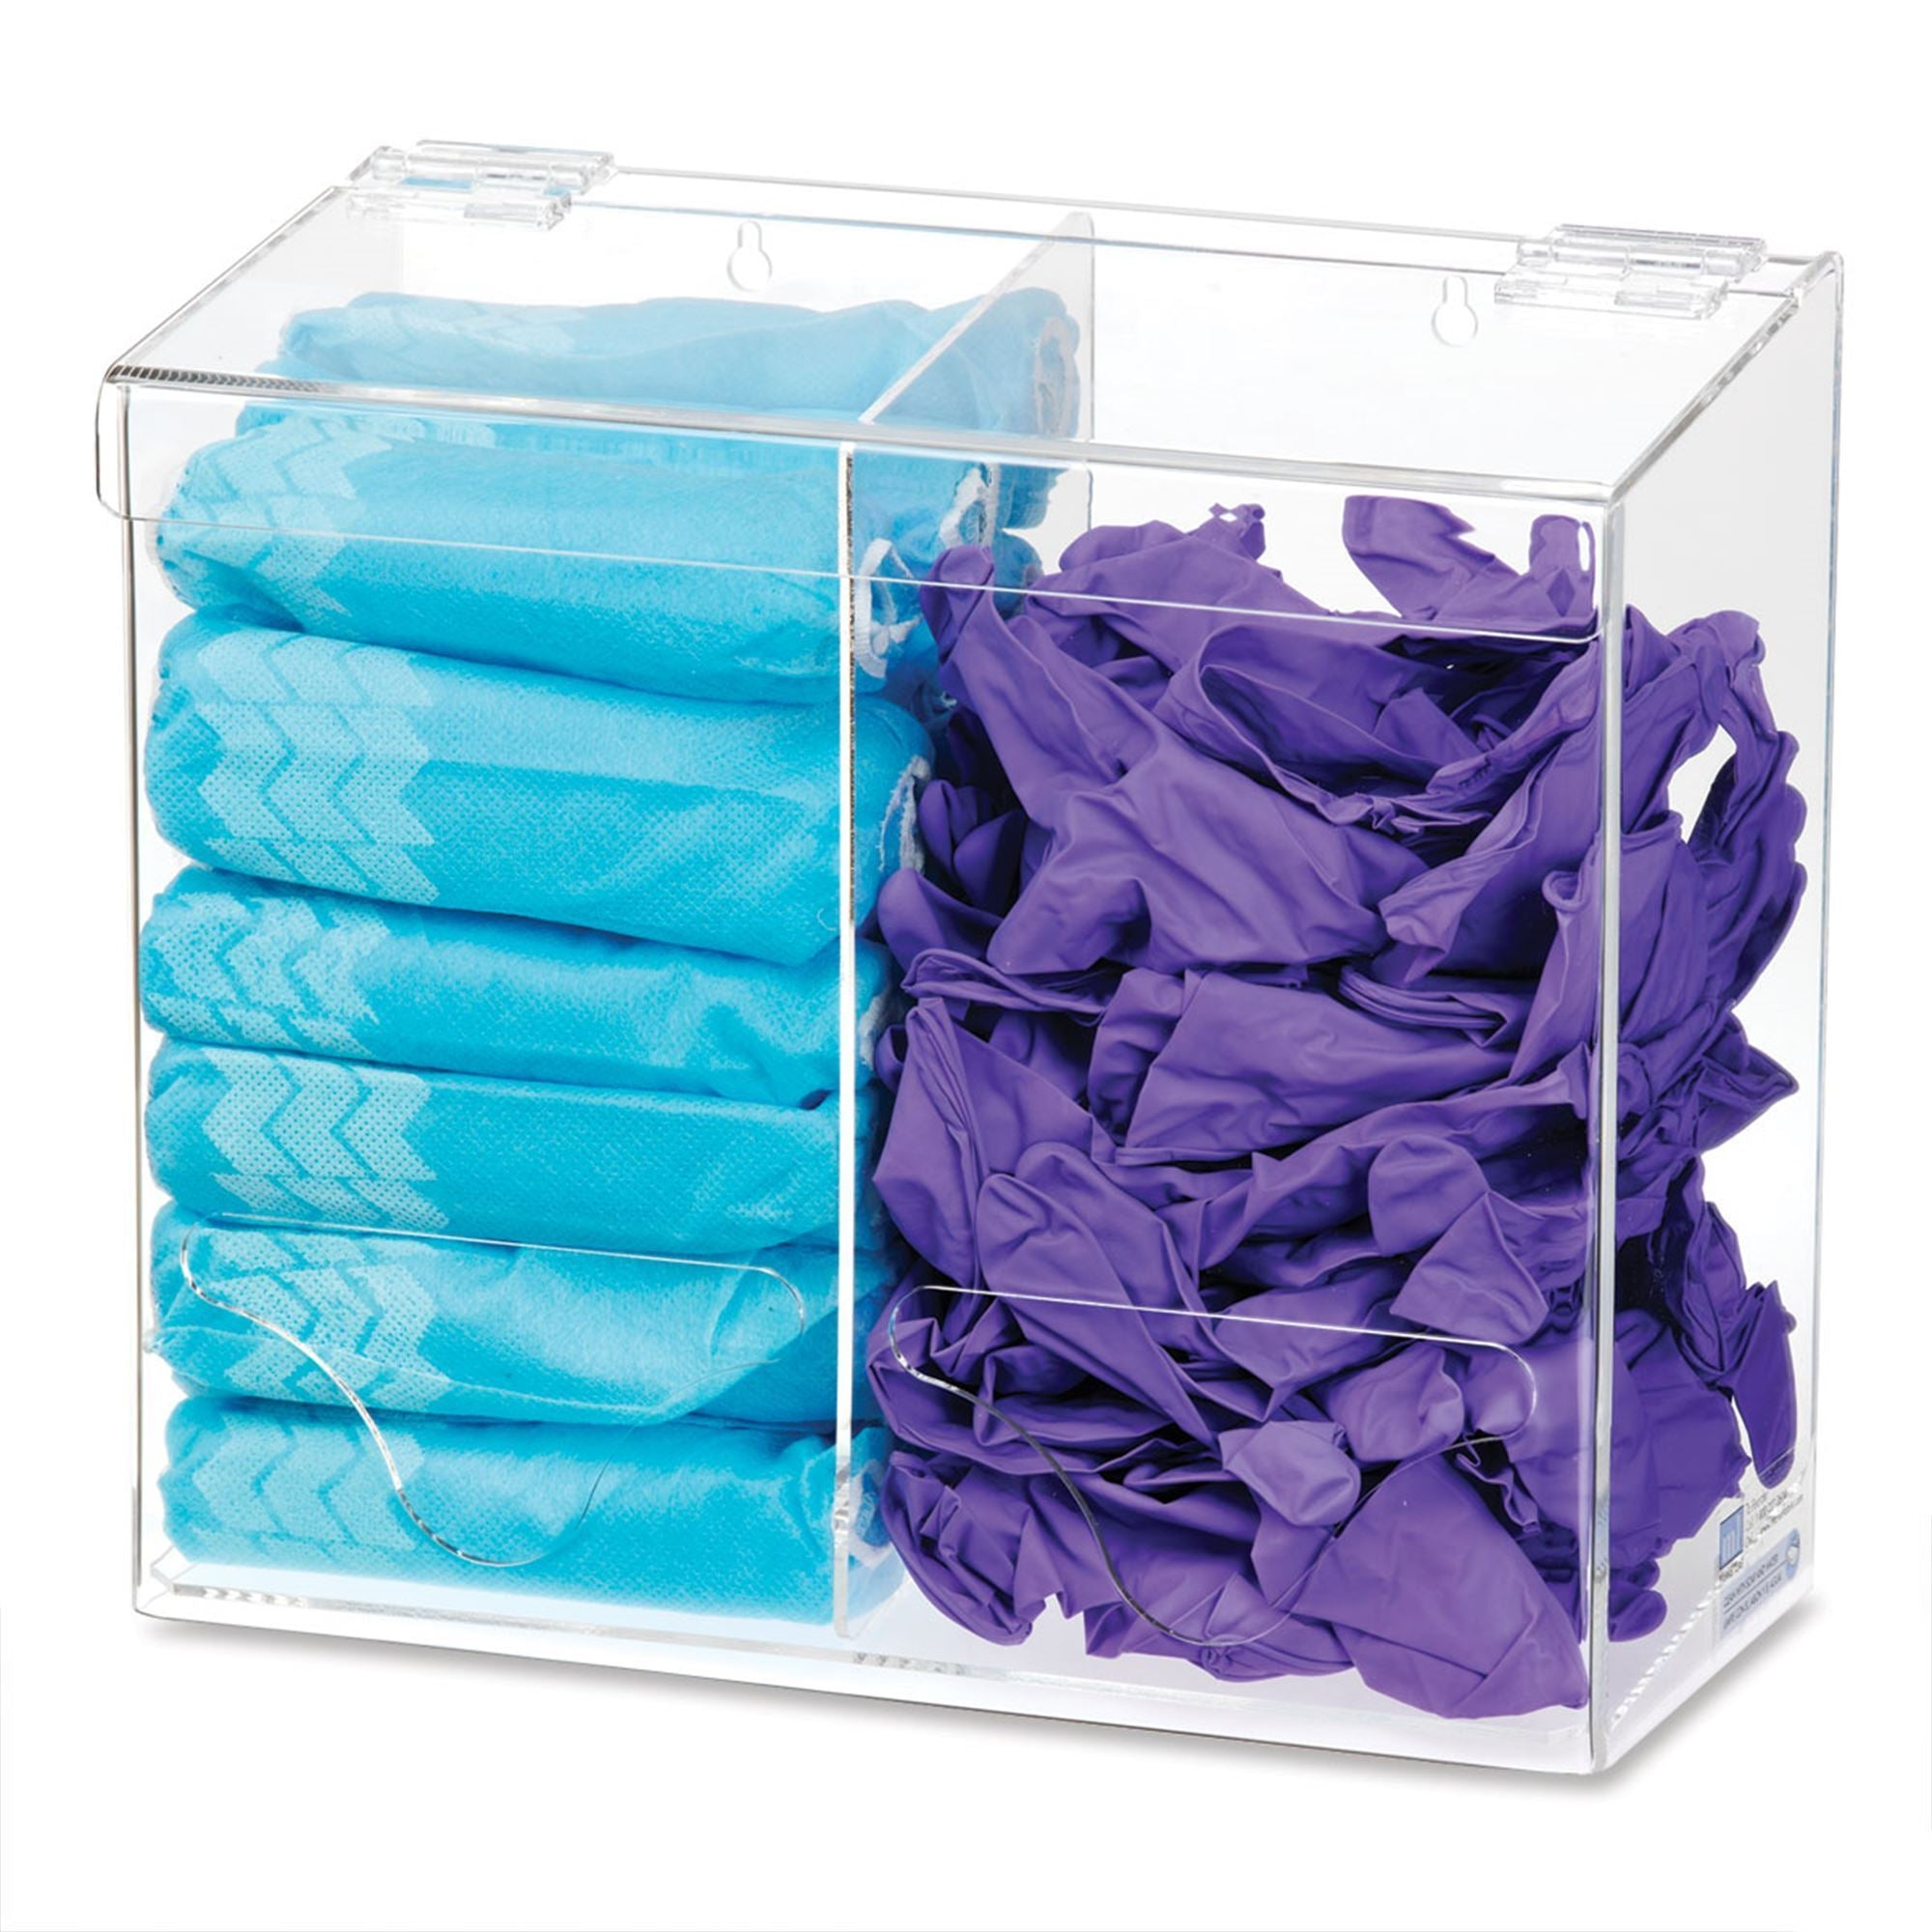 All-Purpose Acrylic Bulk Organizer, 2 Compartments